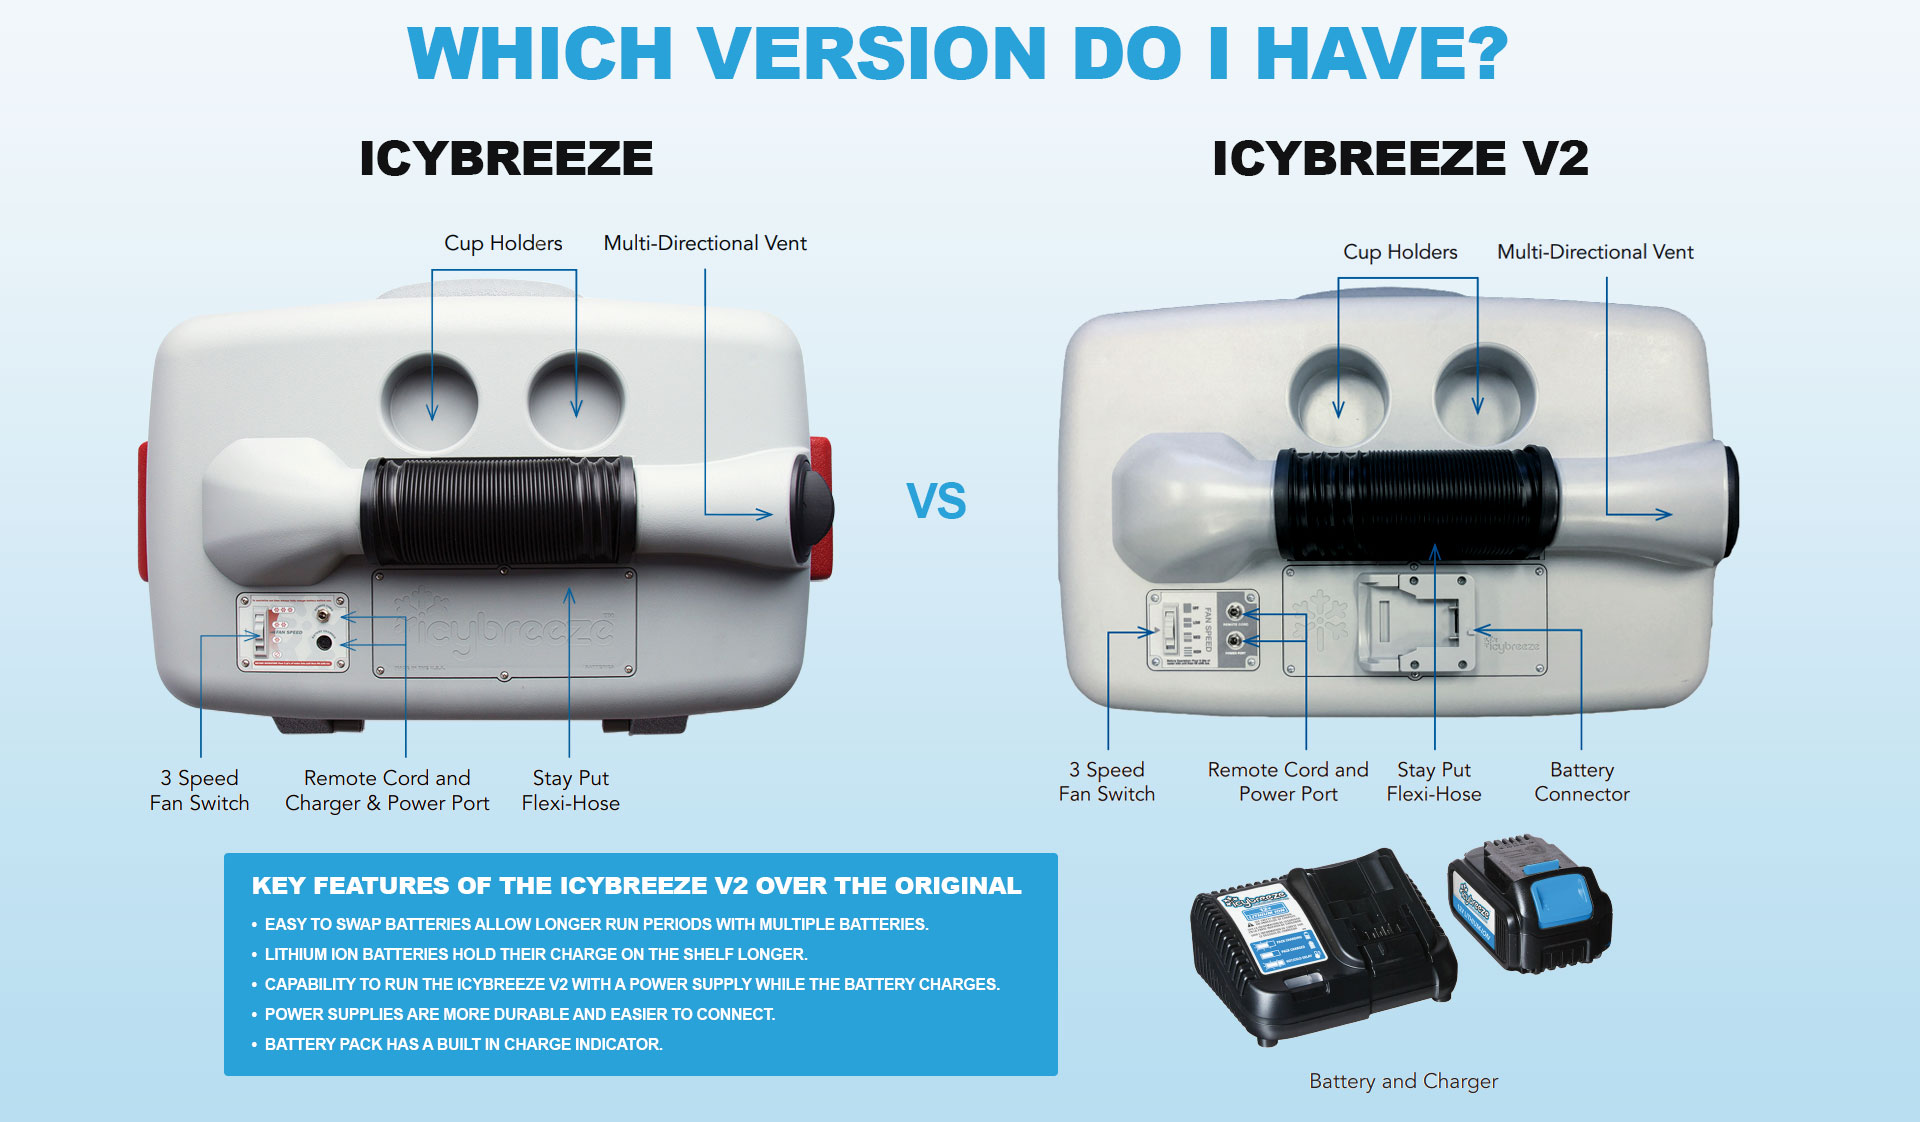 IcyBreeze Version Comparison